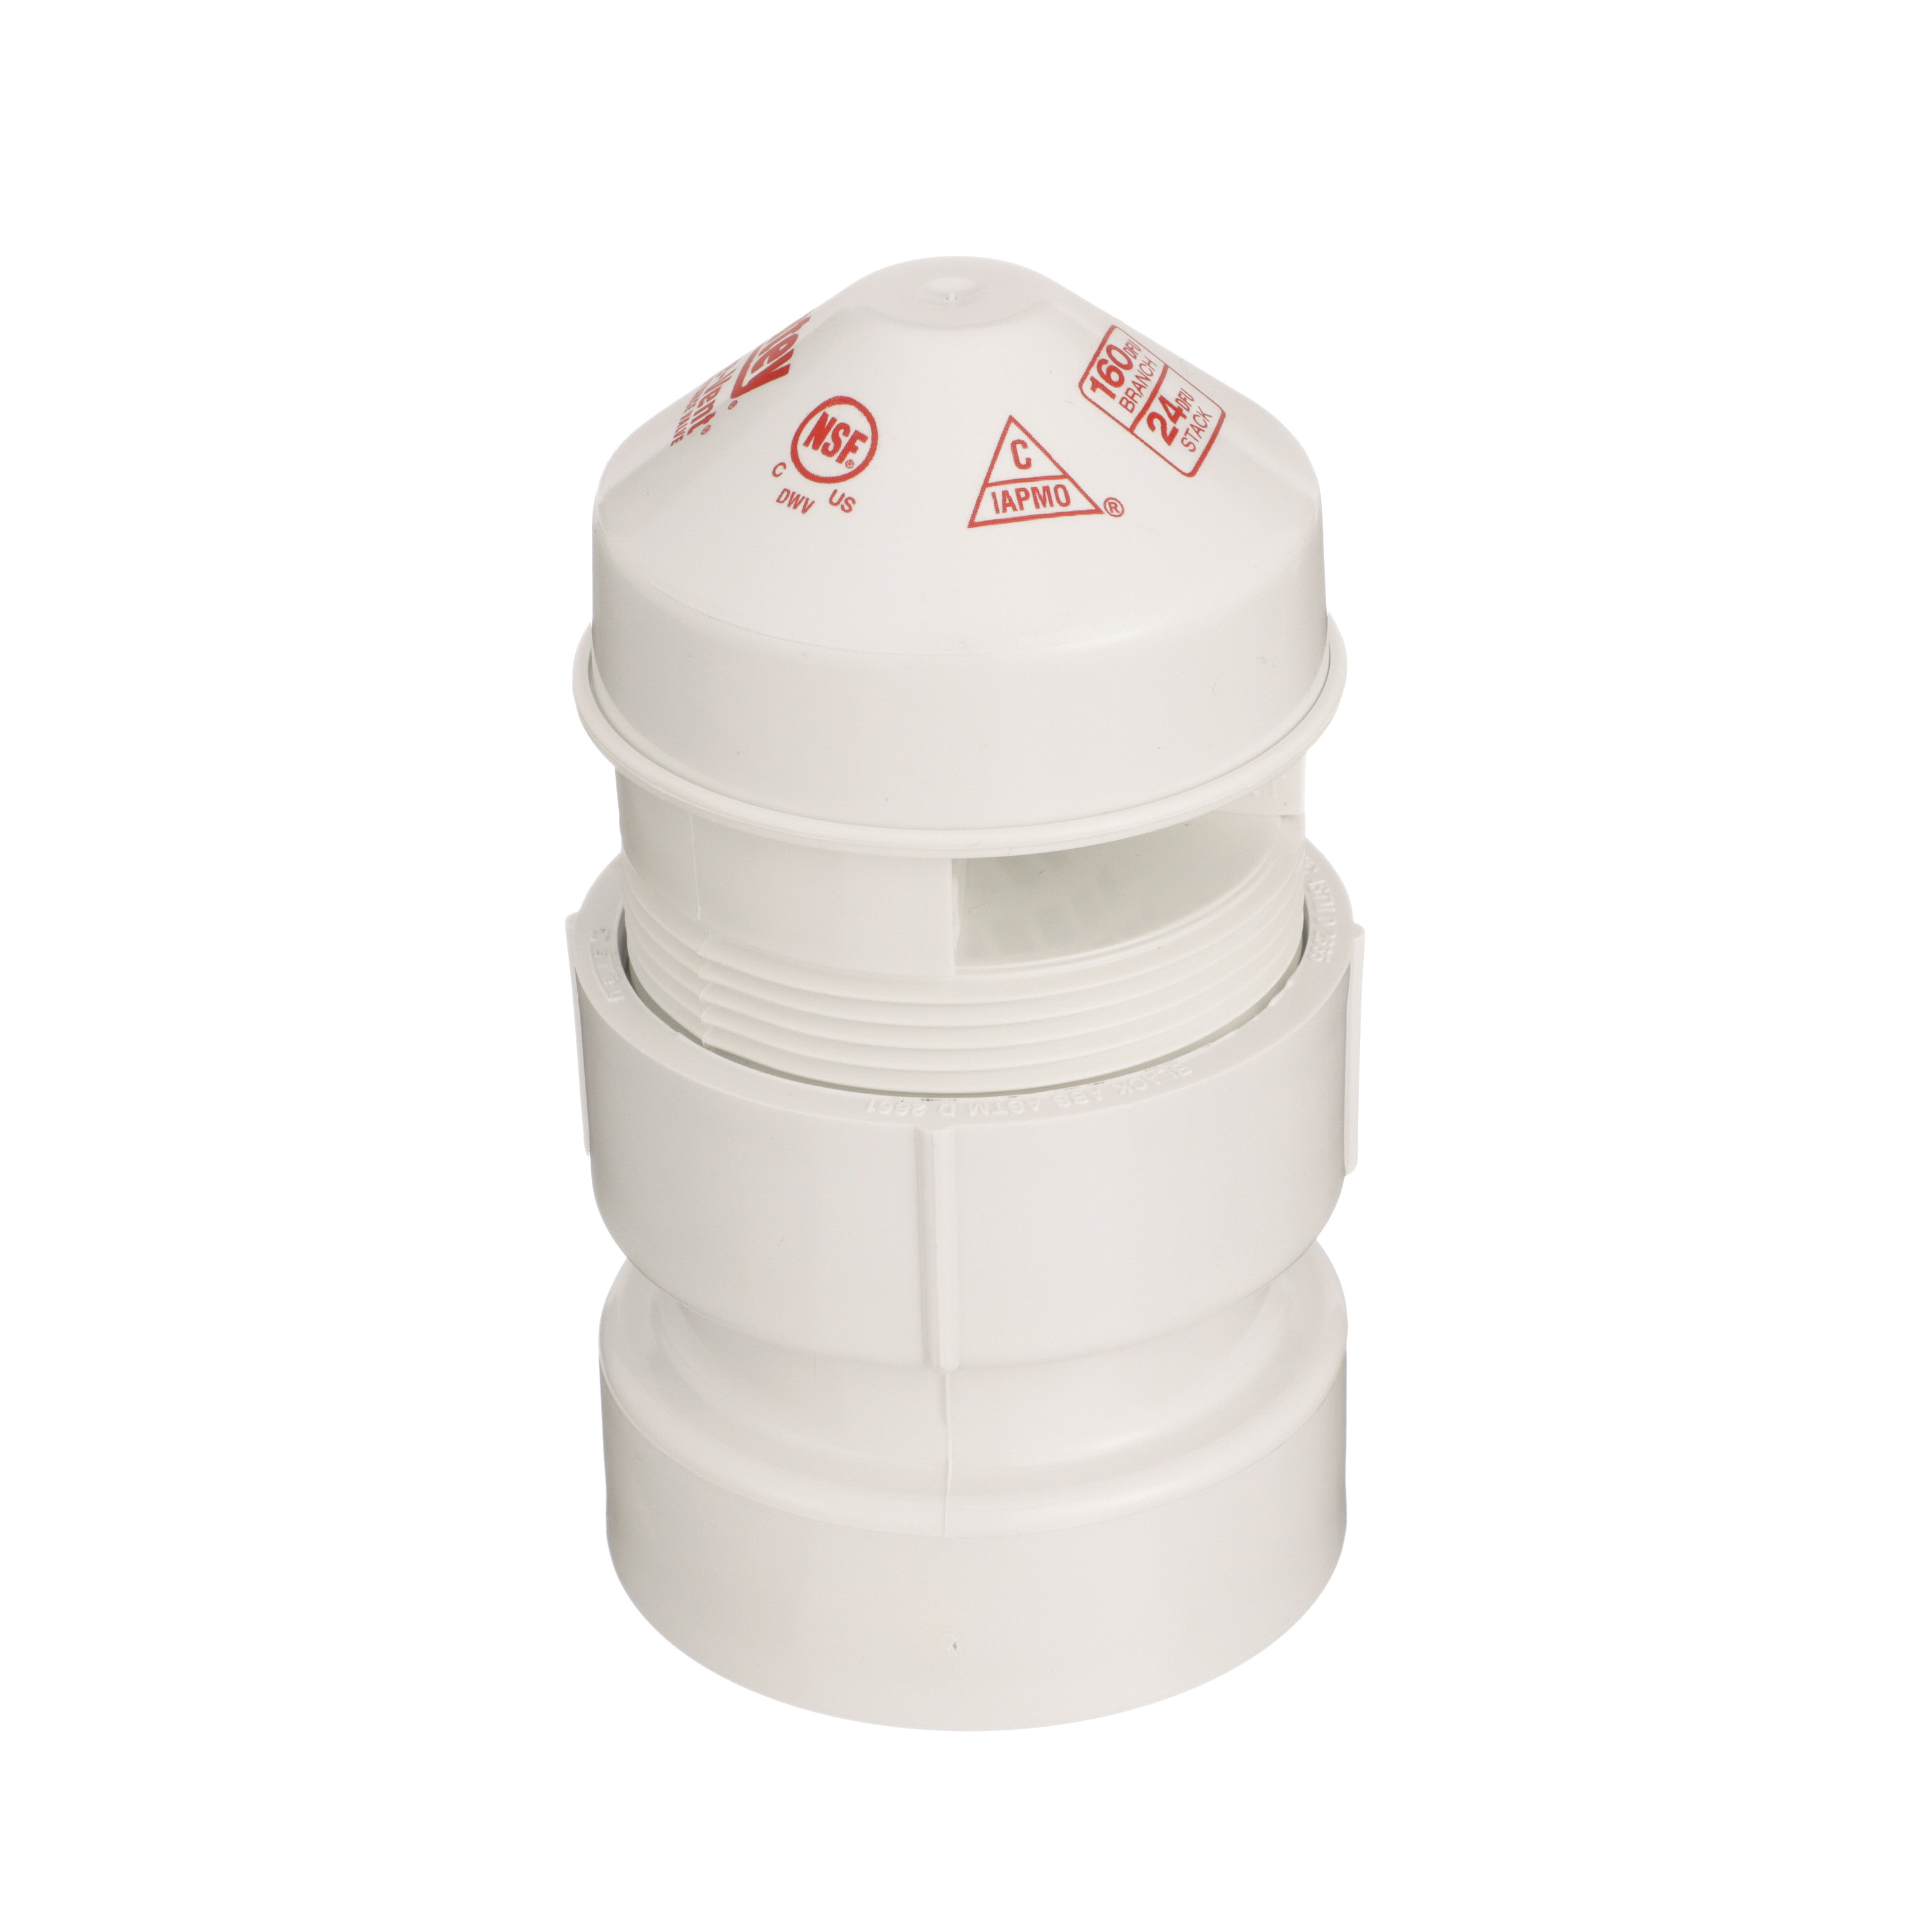 Oatey® Sure-Vent® 39017 Air Admittance Valve With 1-1/2 x 2 in PVC SCH 40 Adapter, 1-1/2 to 2 in, NPT, 20 DFU, PVC Body, Domestic